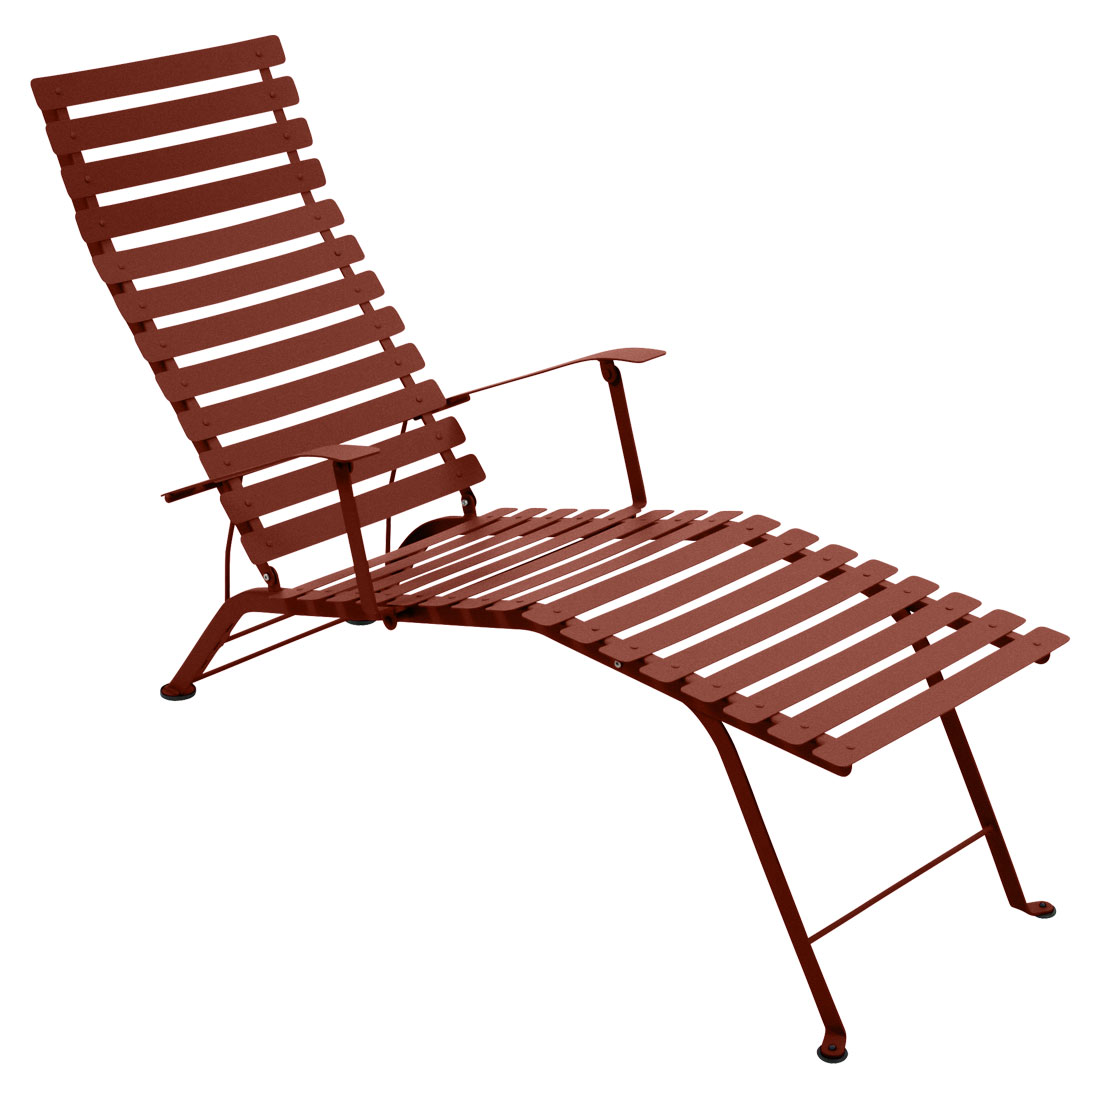 Fermob Bistro Chaise Longue Sunlounger - 3 Year Guarantee